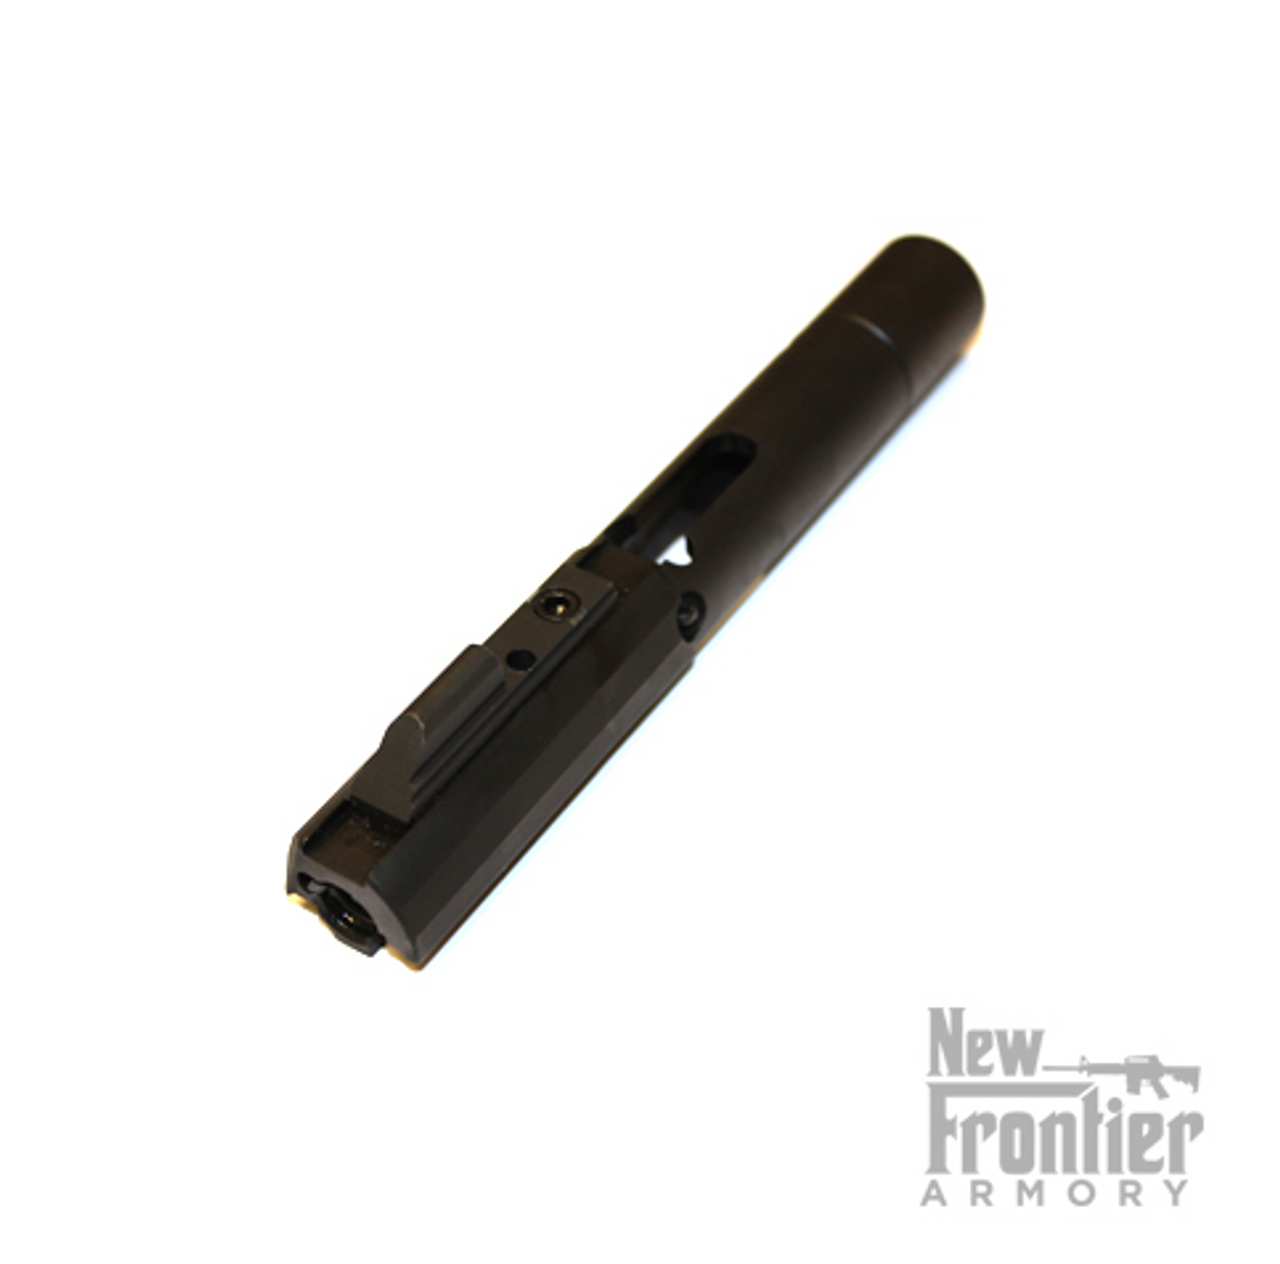 New Frontier Armory AR-9 Standard 9mm BCG (Glock & Colt Compatible)